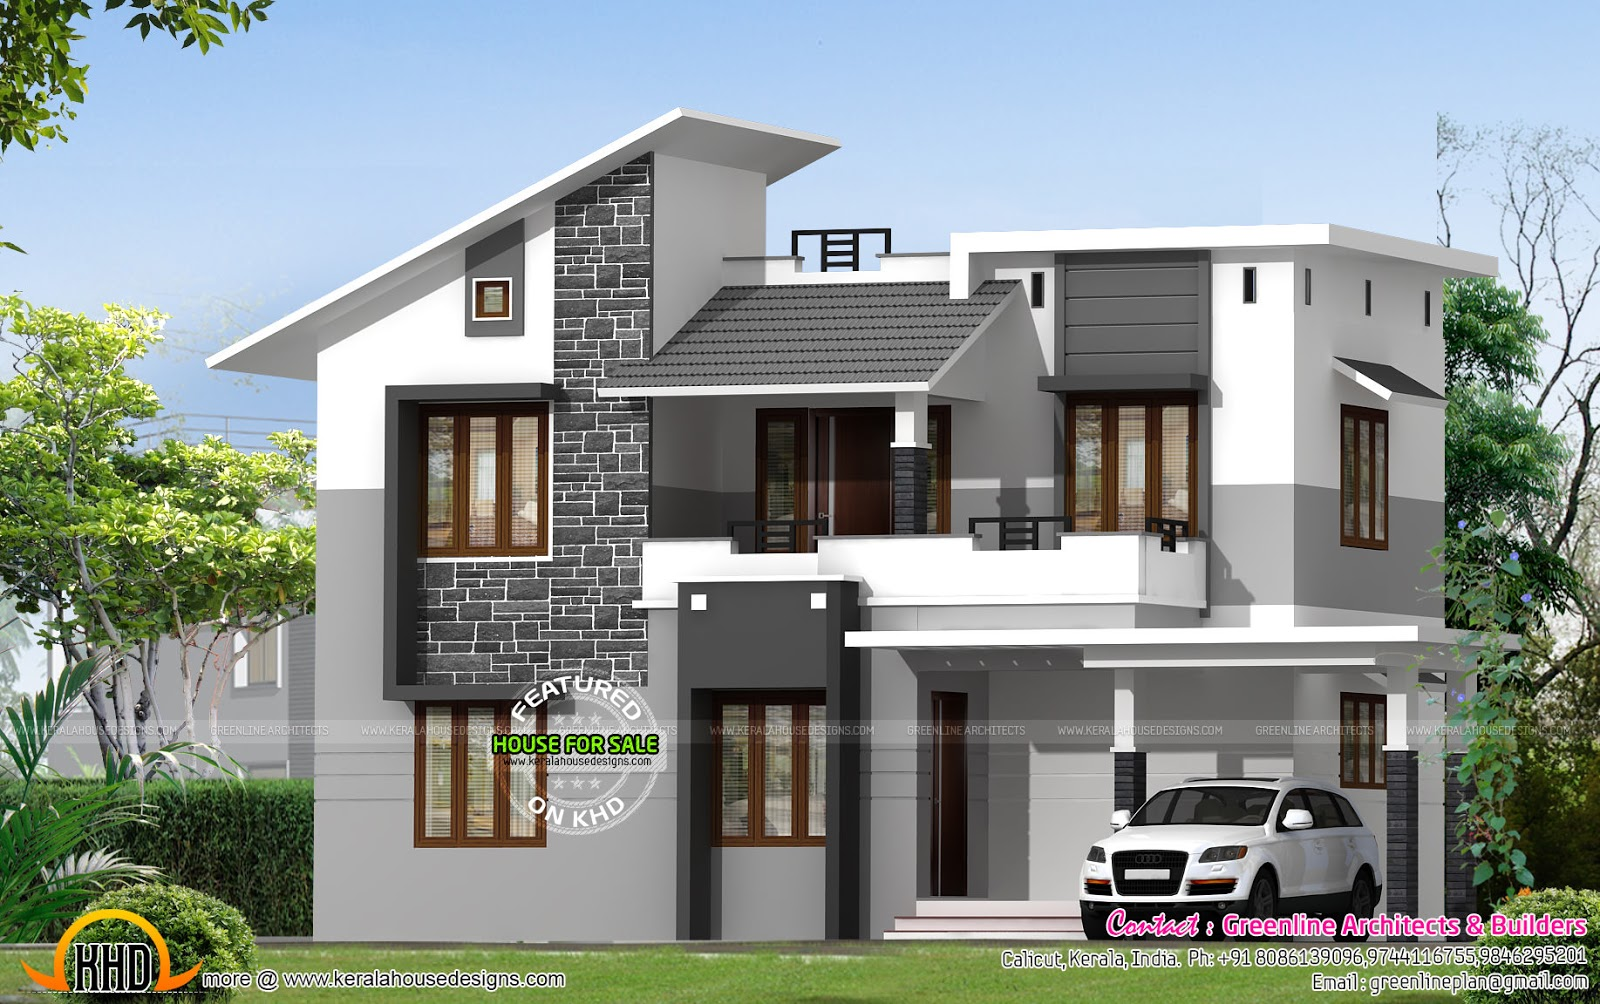 2 types of villa home plans kerala home design and floor for Single gate designs for homes